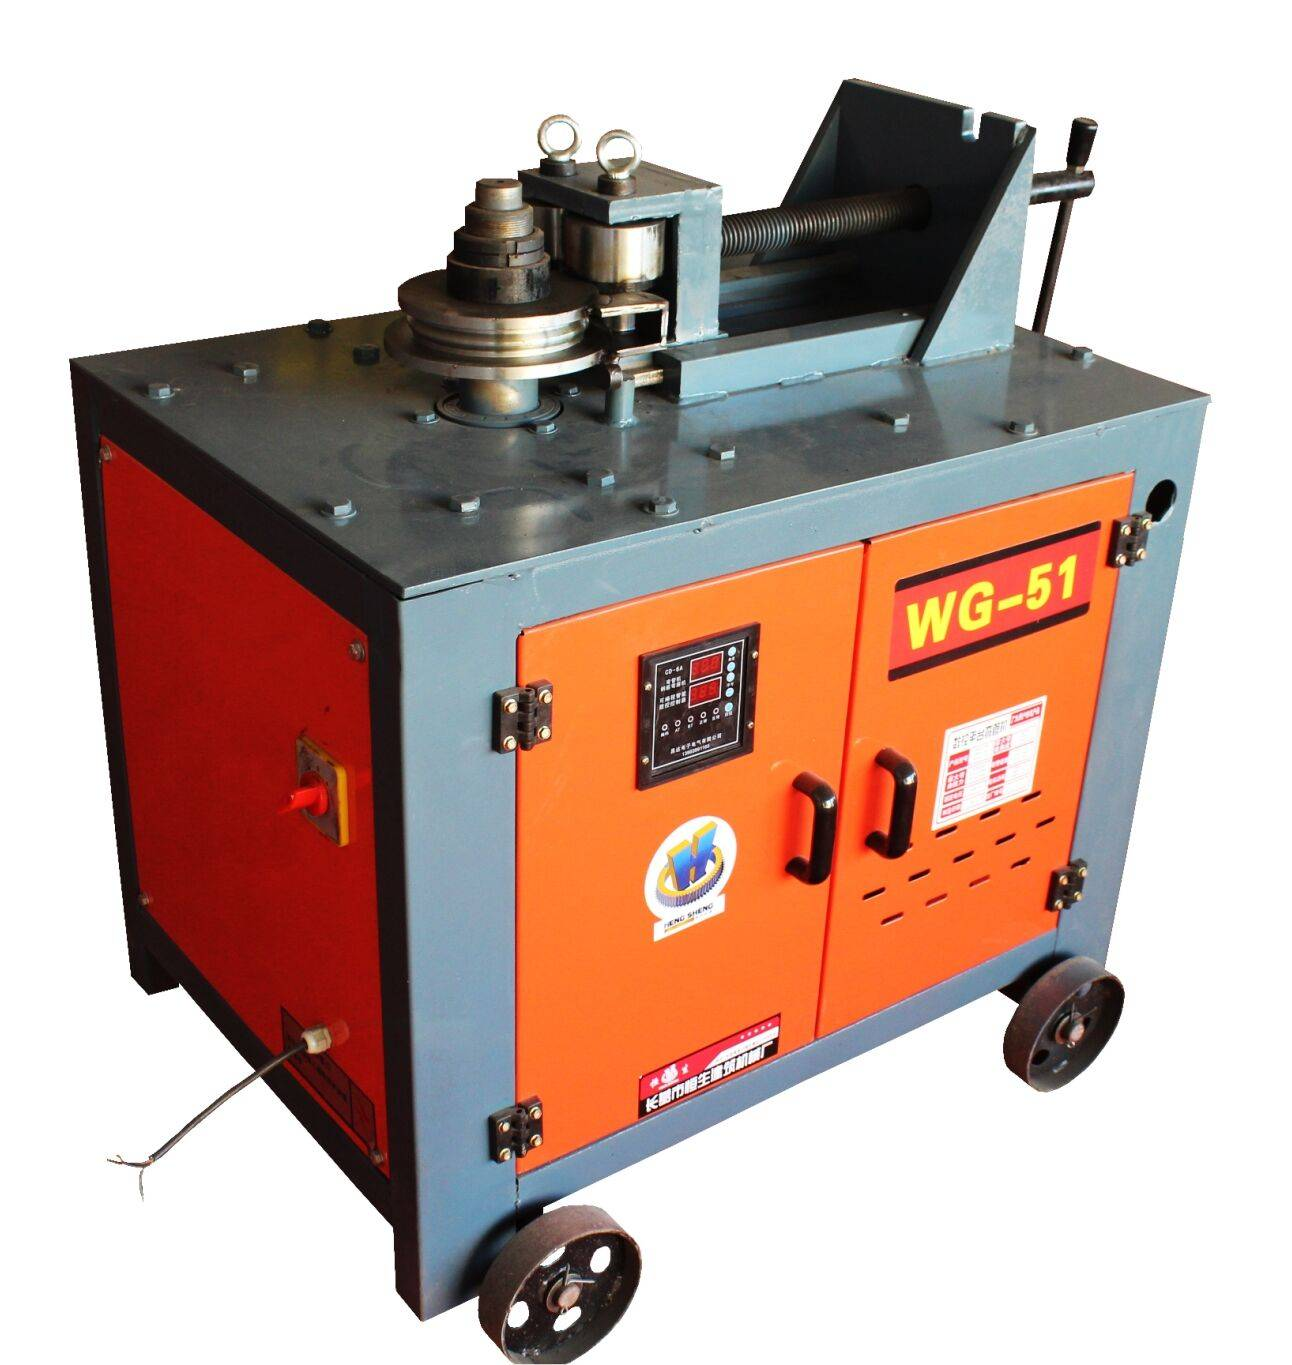 51mm pipe bending machine